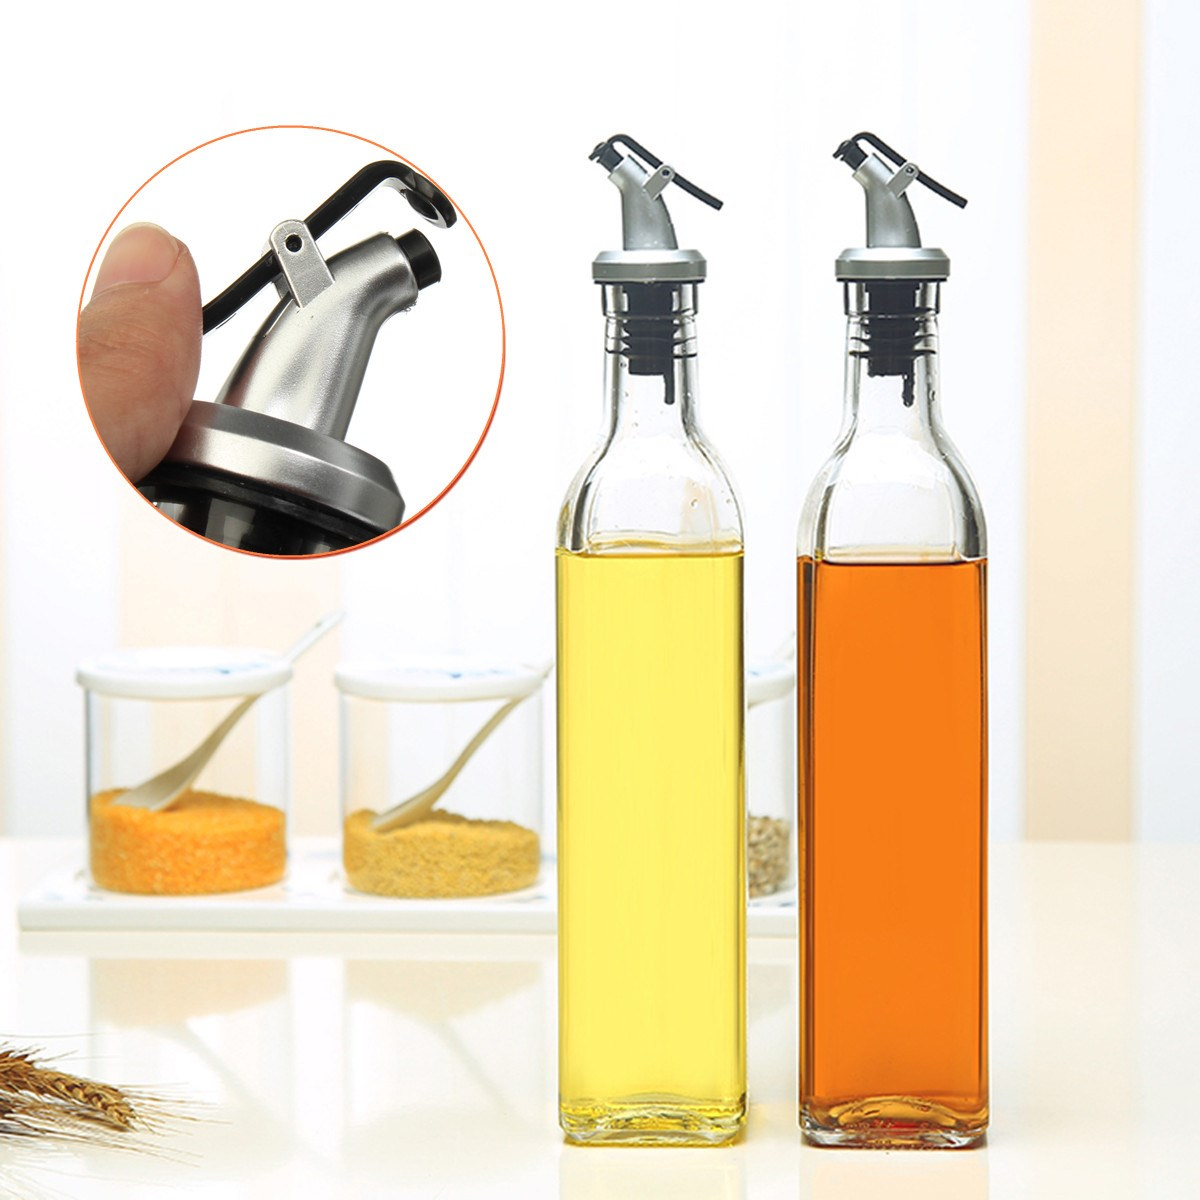 Buy cooking oil dispenser and get free shipping on AliExpress.com